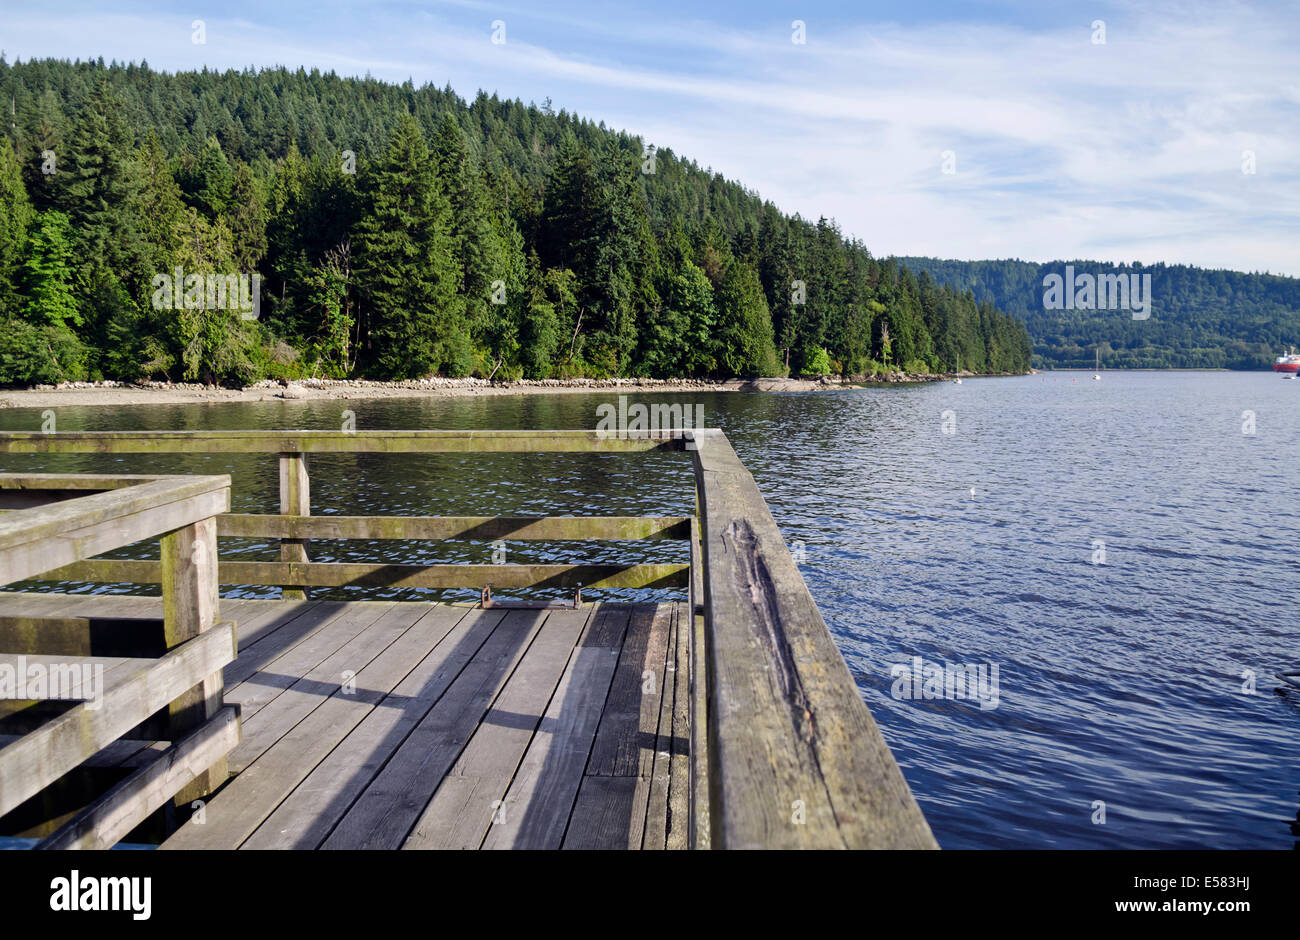 Wooden pier overlooking the waters of Burrard Inlet and forest of Belcarra Regional Park in Greater Vancouver. - Stock Image